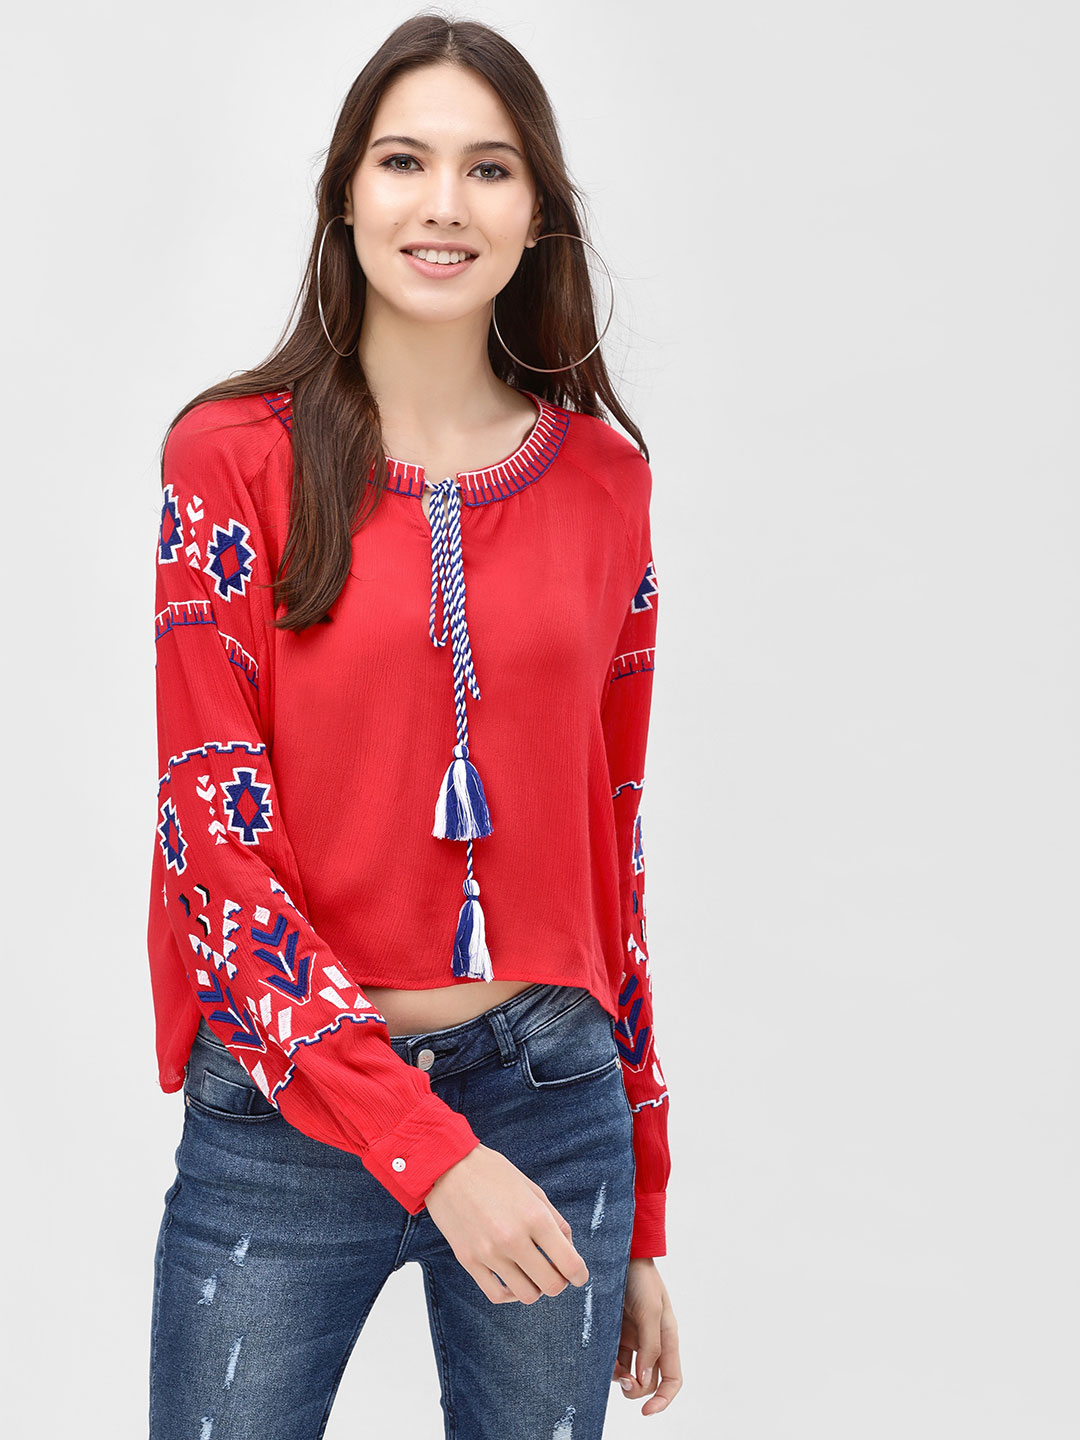 Kisscoast Red Blouse With Heavy Embroidery 1